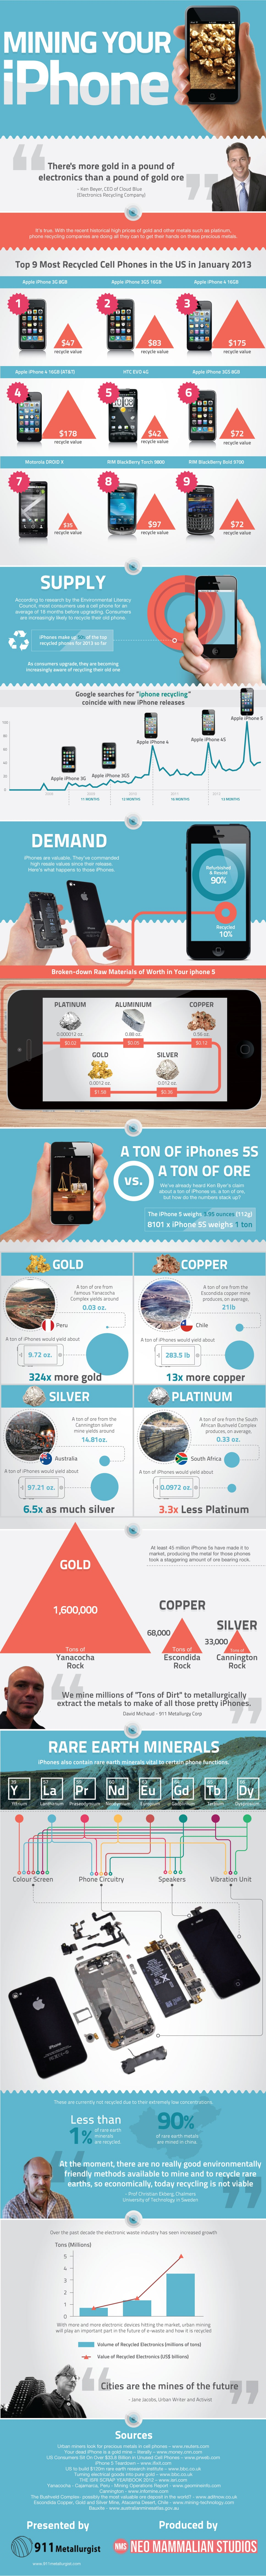 Image Credit: Mining Your iPhone [Infographic] – By the team at 911metallurgist.com/mining-iphones/